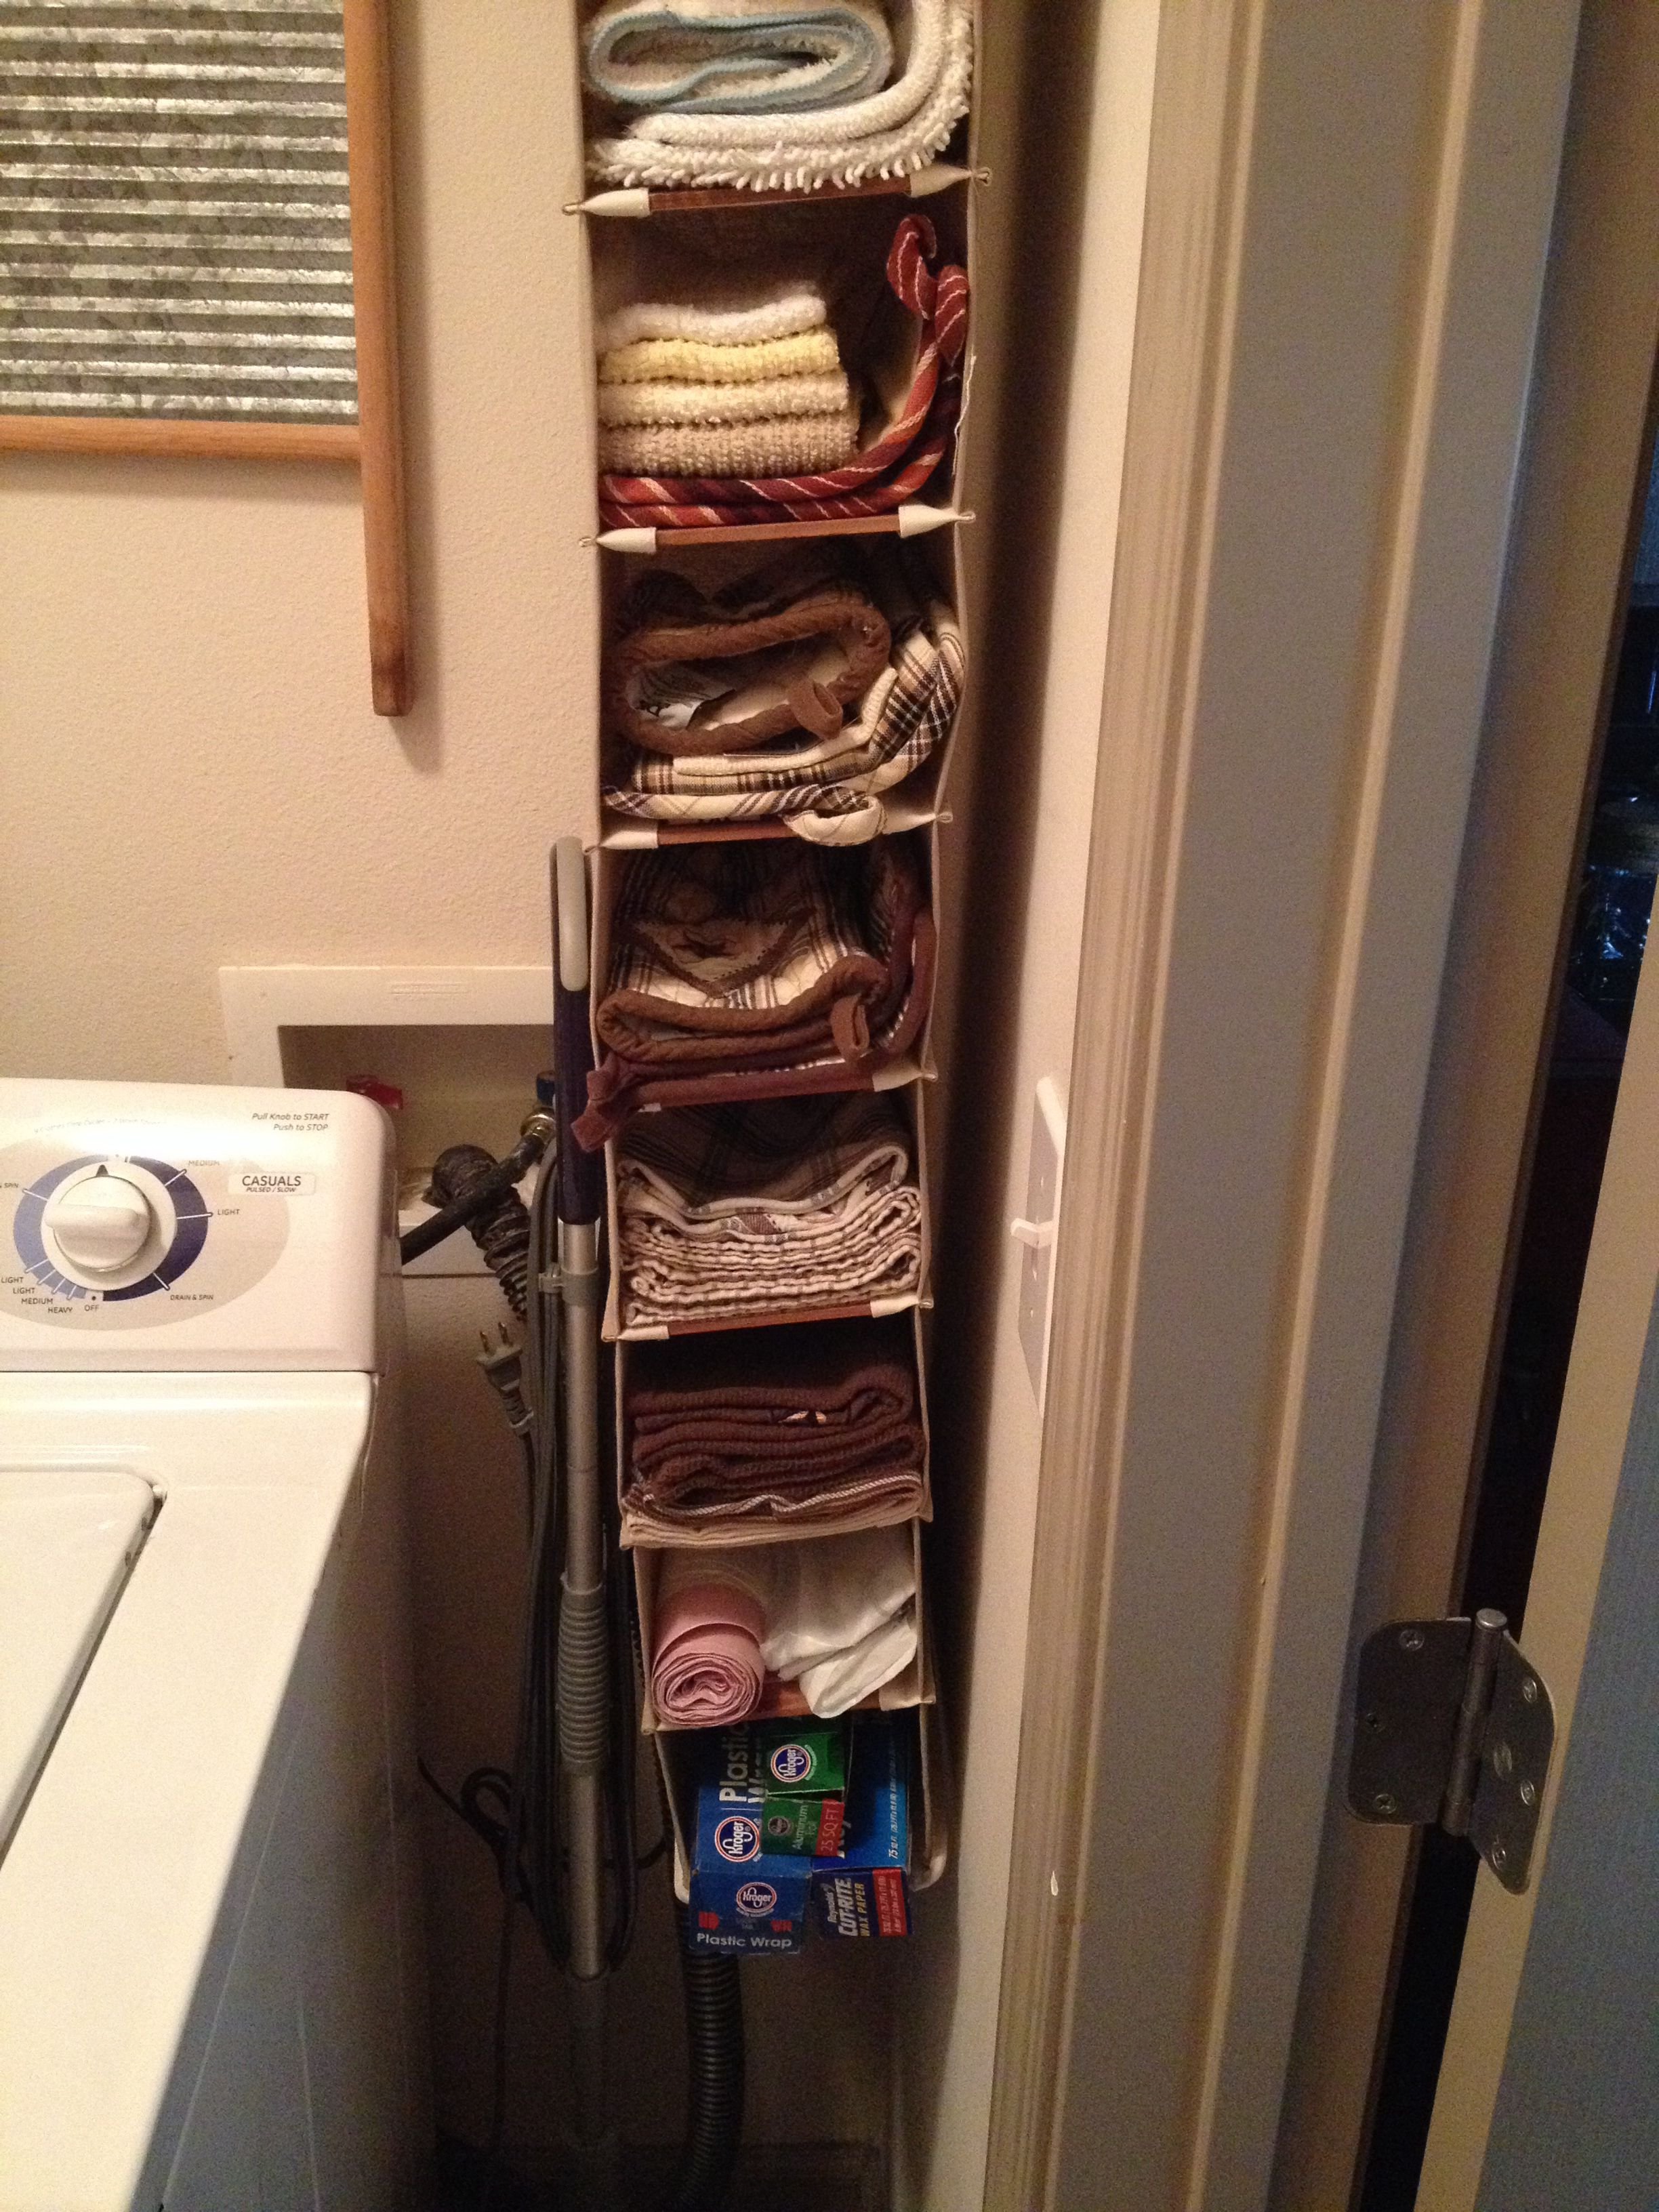 Small Apartment Idea Canvas Shoe Storage Unit For Kitchen Items That Would Typically Go In A Drawer